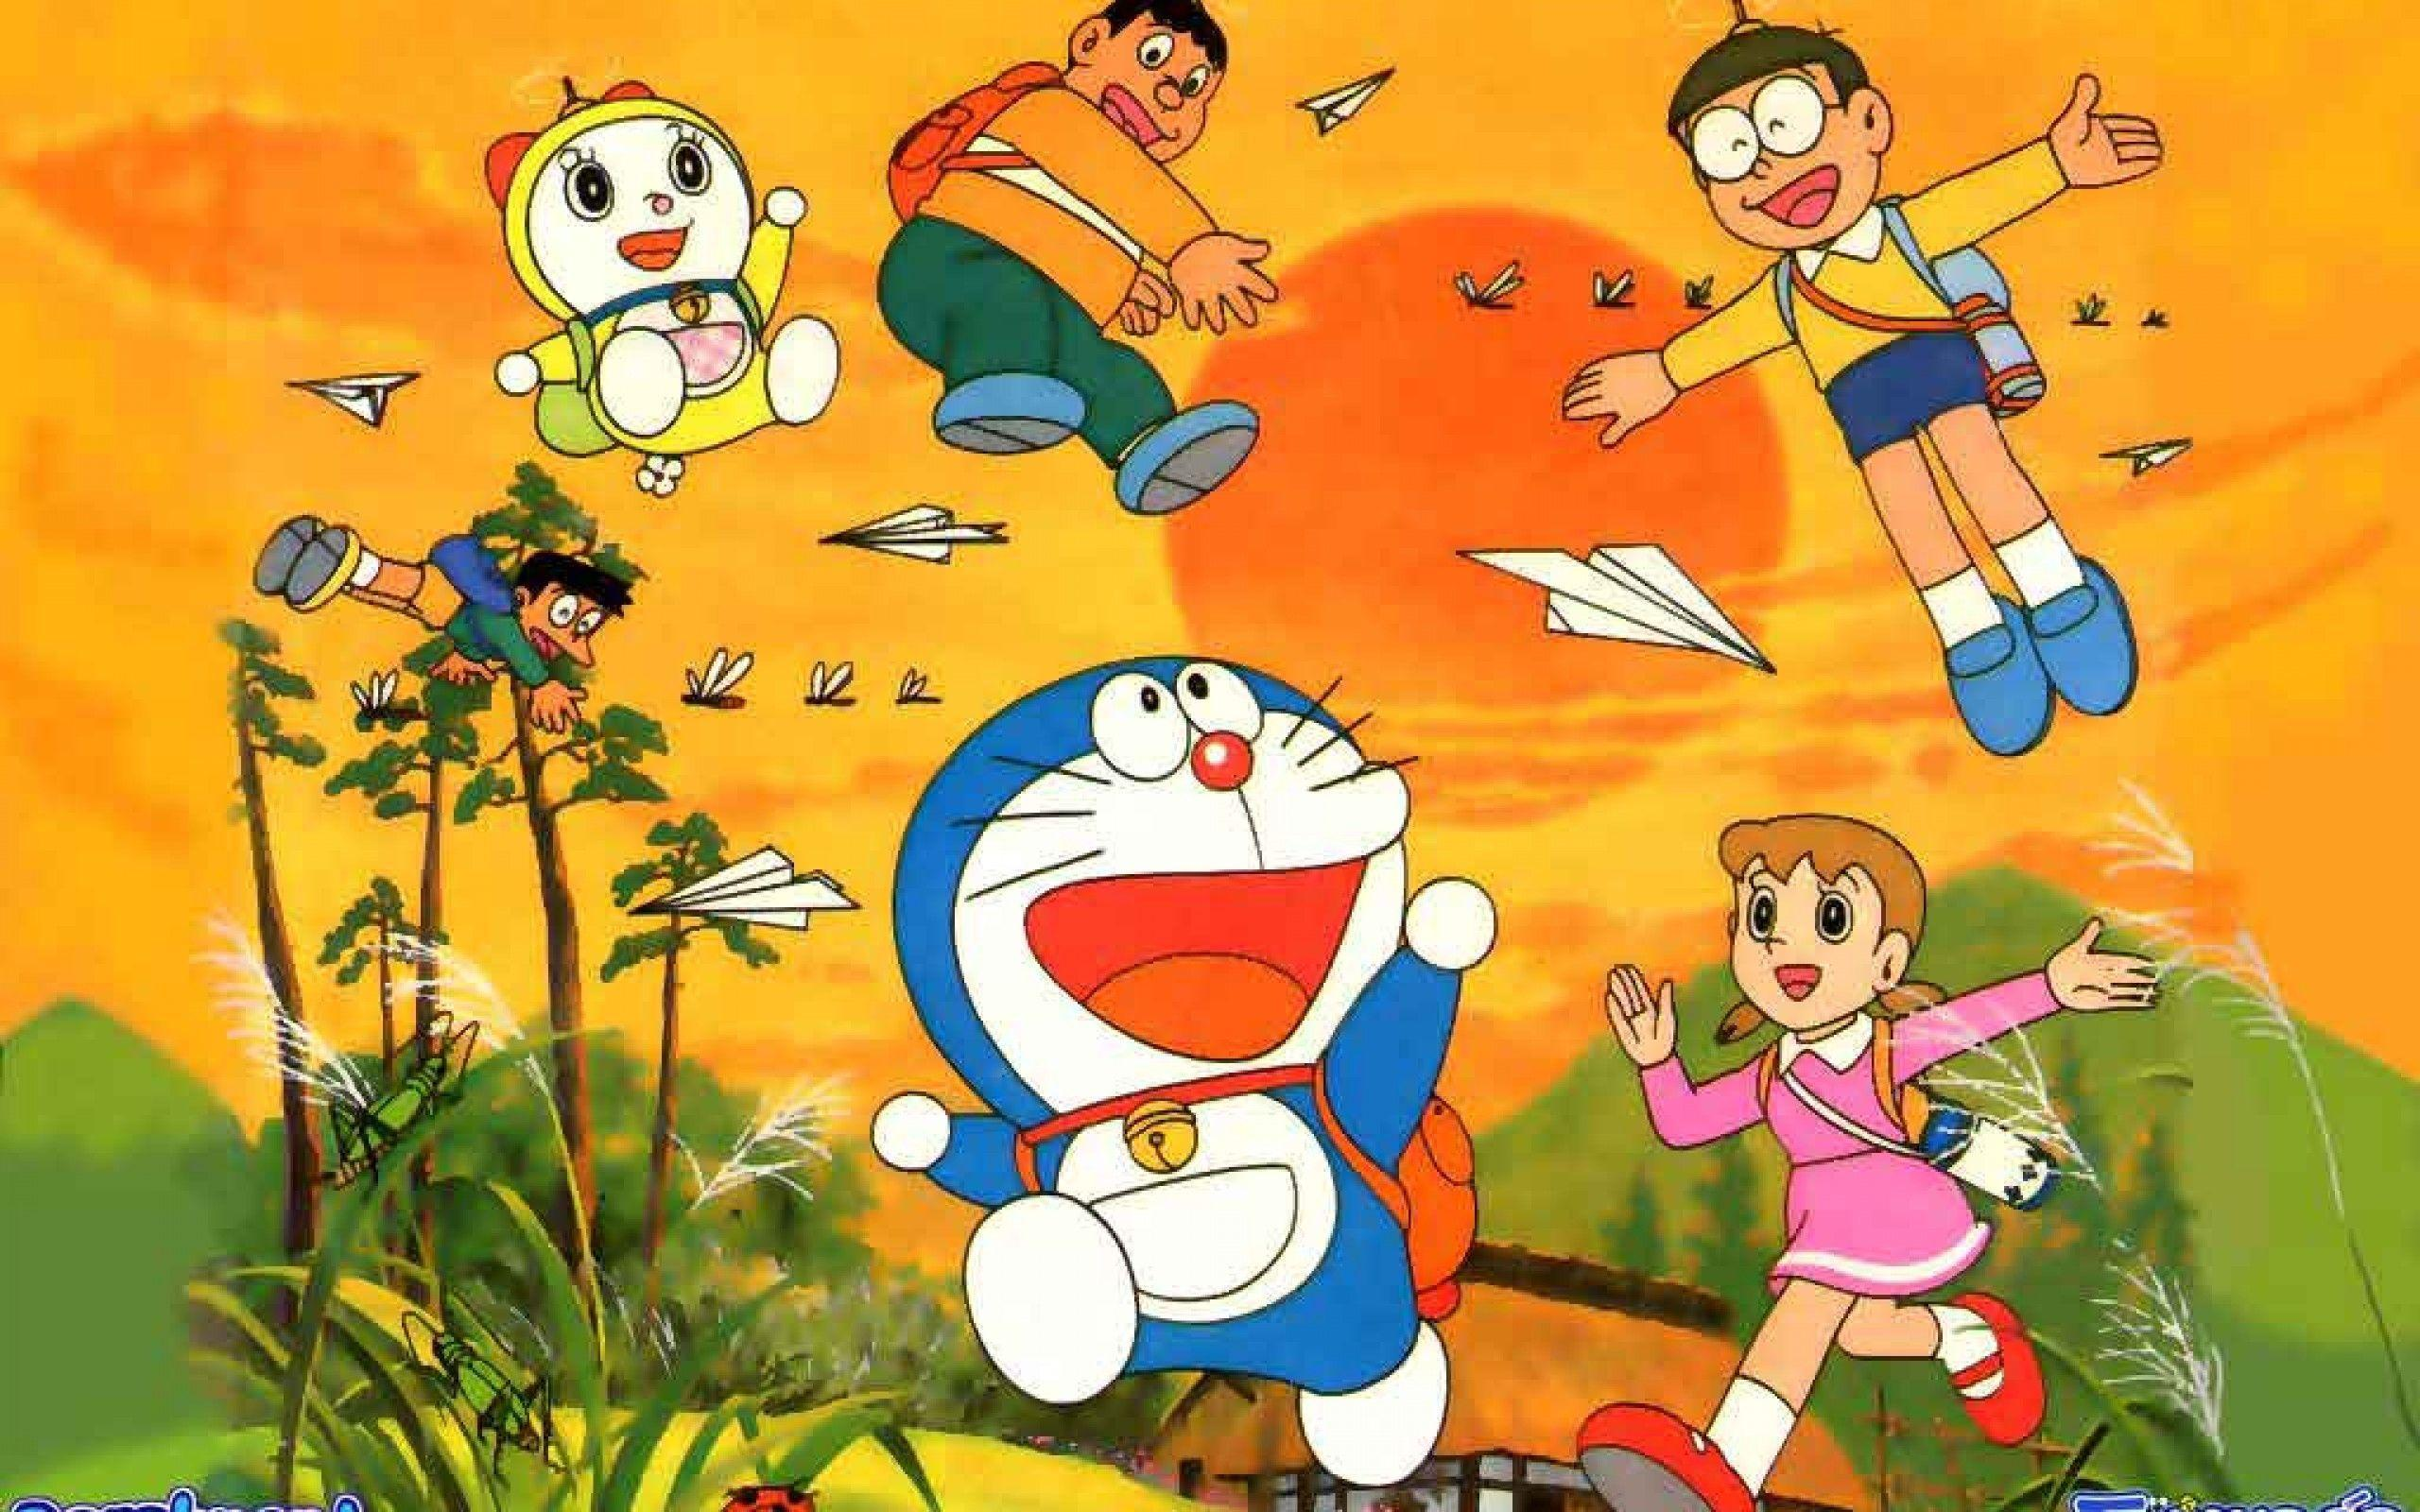 Unduh 106+ Wallpaper Doraemon Gta HD Terbaik